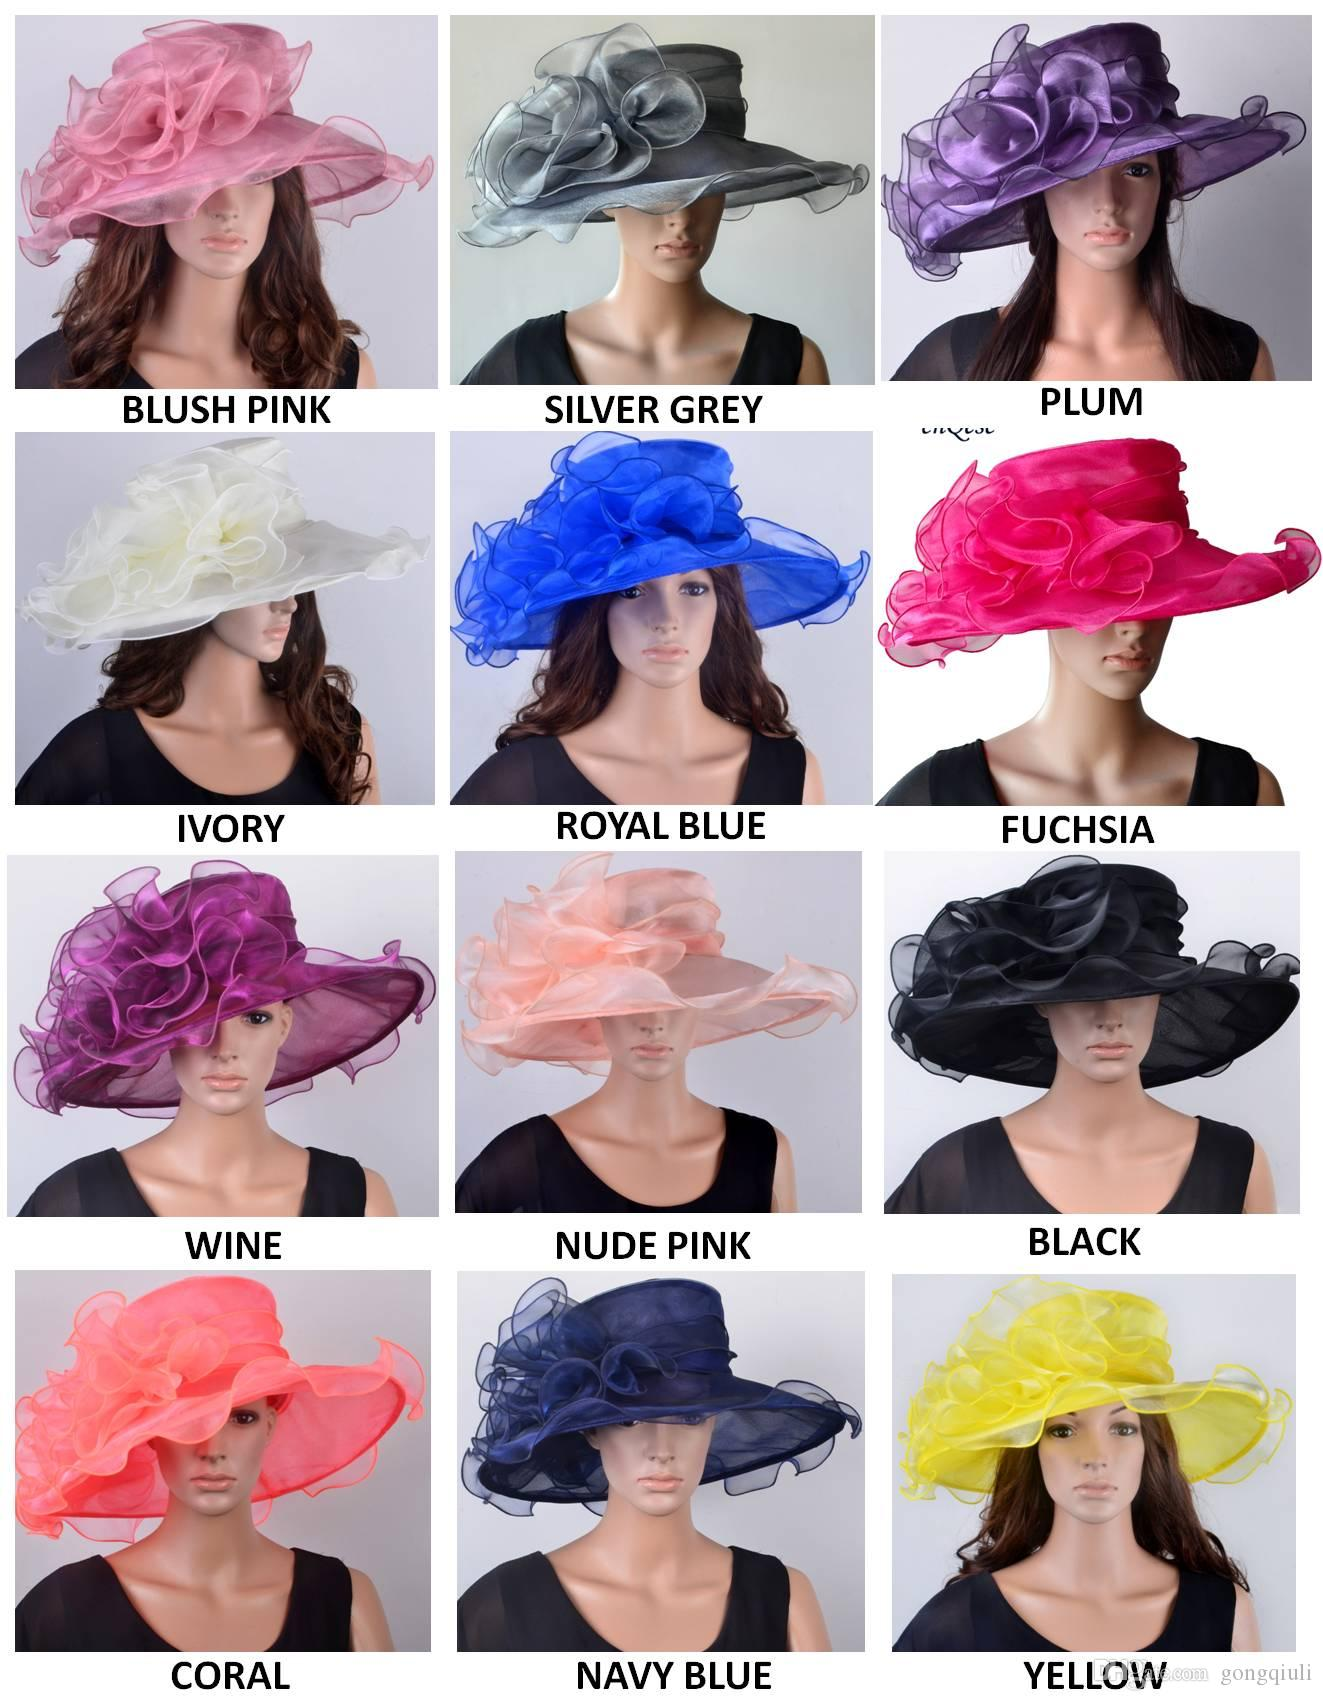 7a75bbef NEW High Quality Wide Brim Organza Hat Bridal Hat For Kentucky Derby,Wedding ,Ascot Races,Melbourne Cup,Party Ascot Hats Hats For Weddings From  Gongqiuli, ...